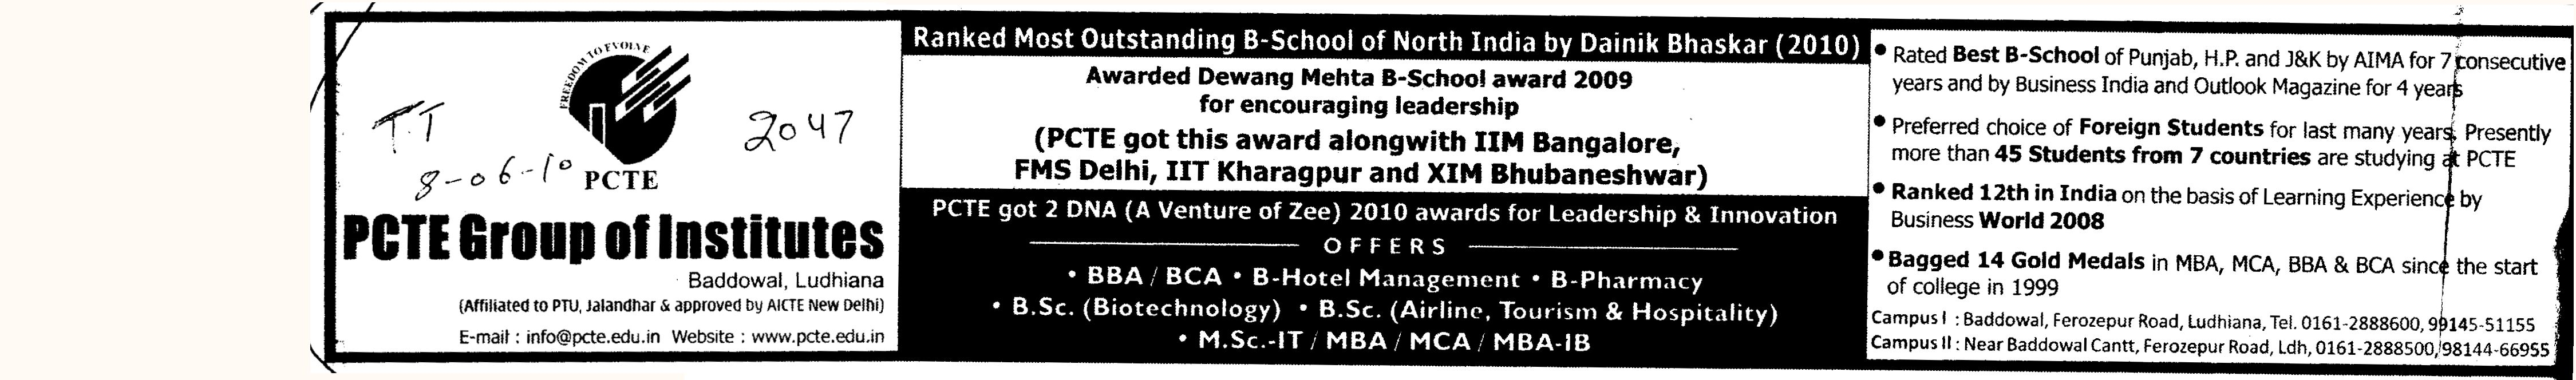 BBA BCA B Pharmacy and MBA etc (PCTE Group of Insitutes Baddowal)